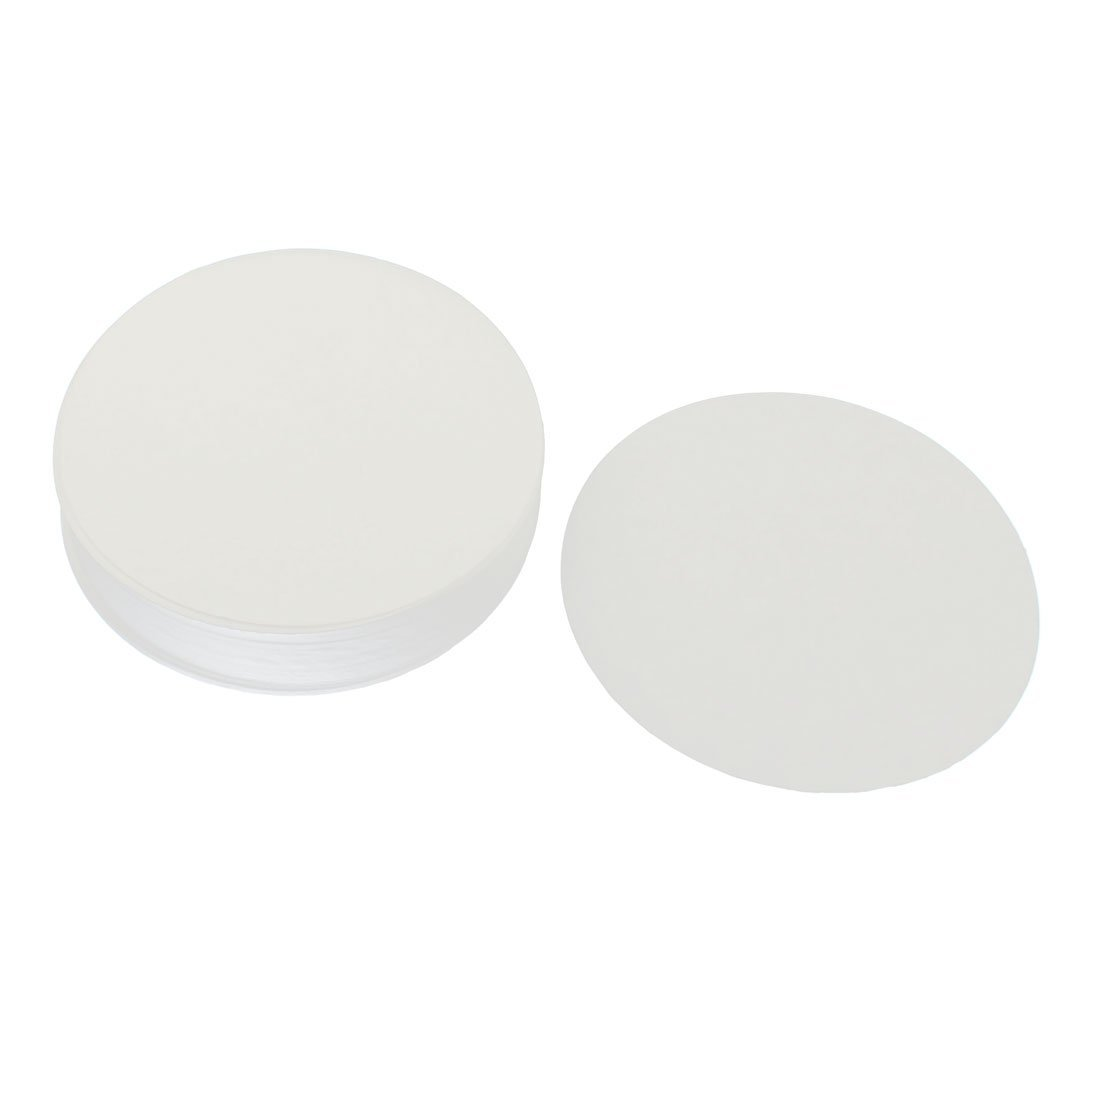 100pcs 11cm Dia Discs Medium Flow Qualitative Pa Rate Bombing free shipping 2021 spring and summer new Filter 102